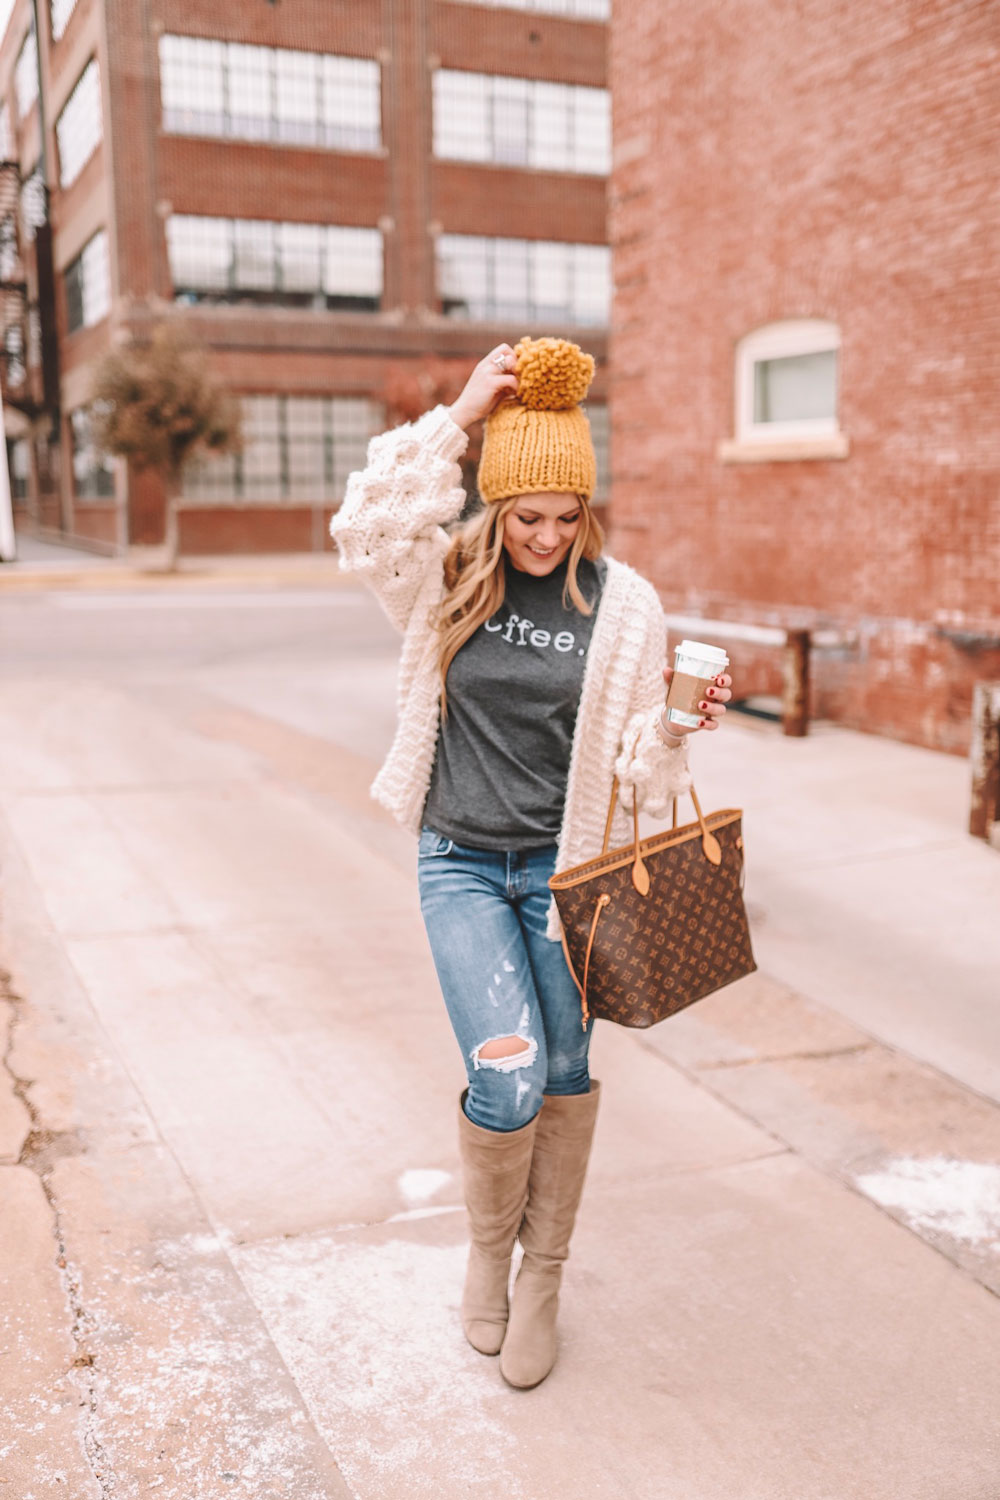 Amanda Martin wears cozy knits to stay warm on a chilly OKC day